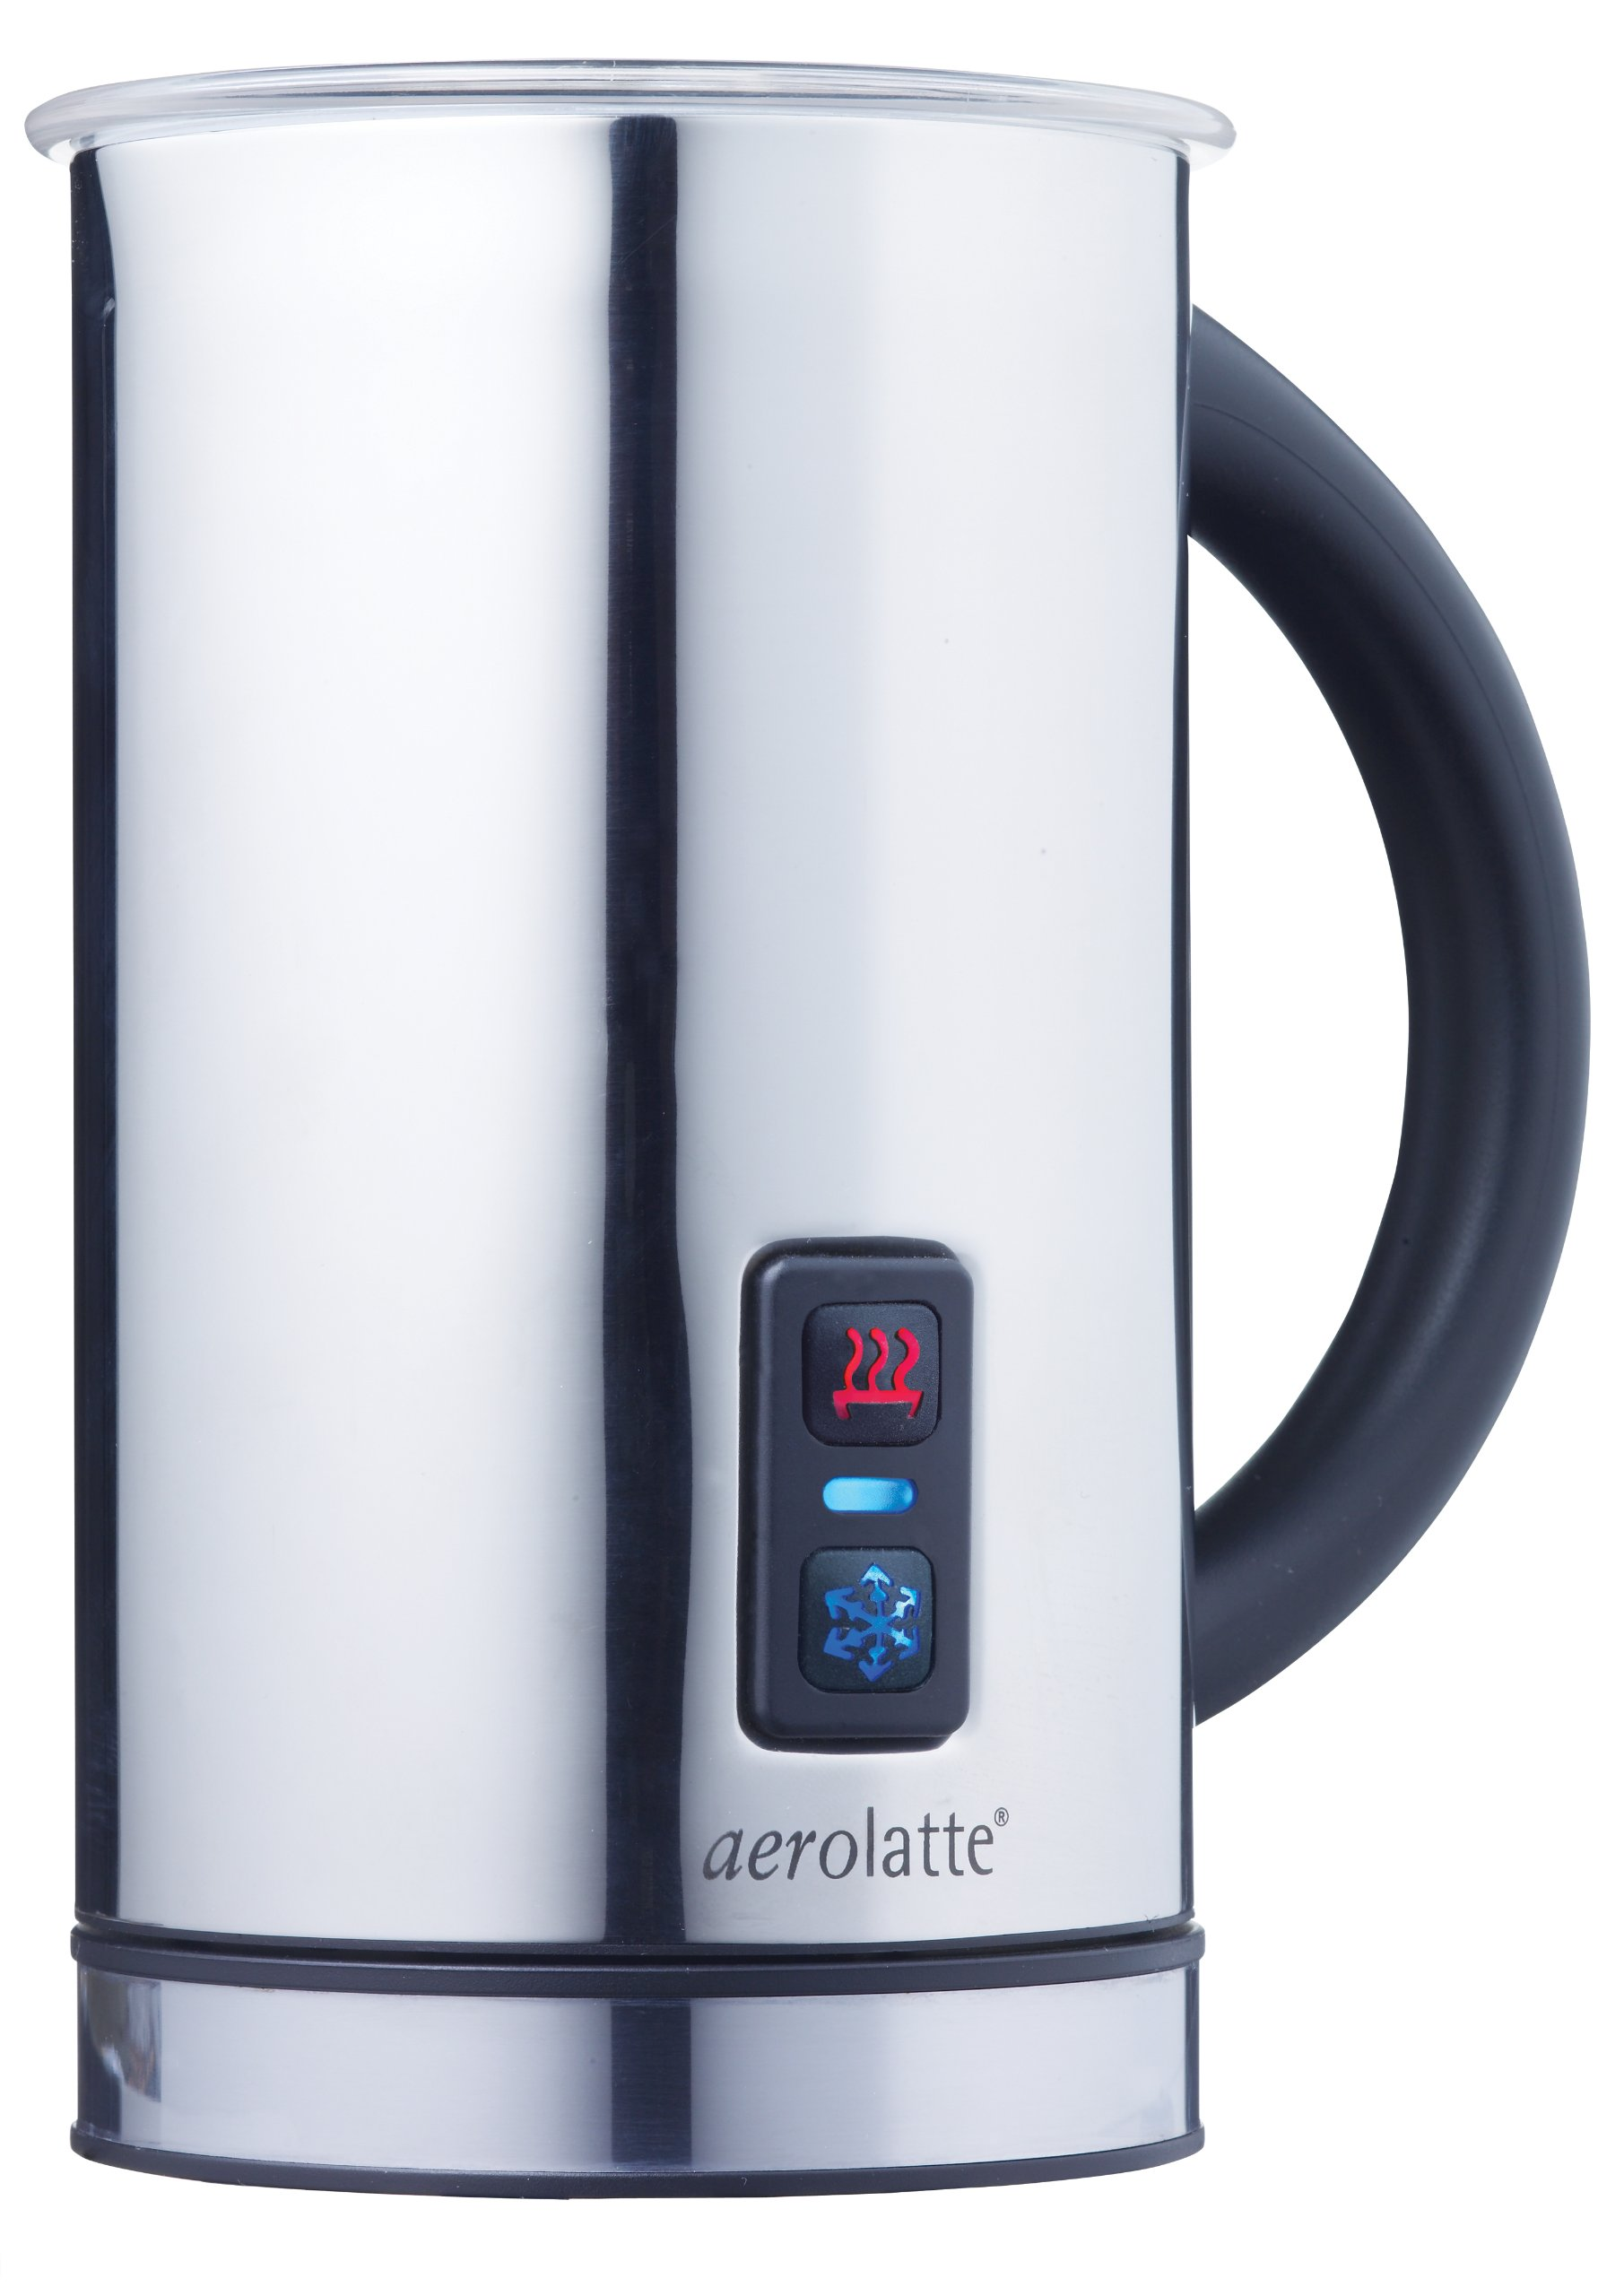 aerolatte Grande Automatic Hot or Cold Milk Frother and Cappuccino Foam Maker, Stainless Steel, 16-Ounce by aerolatte